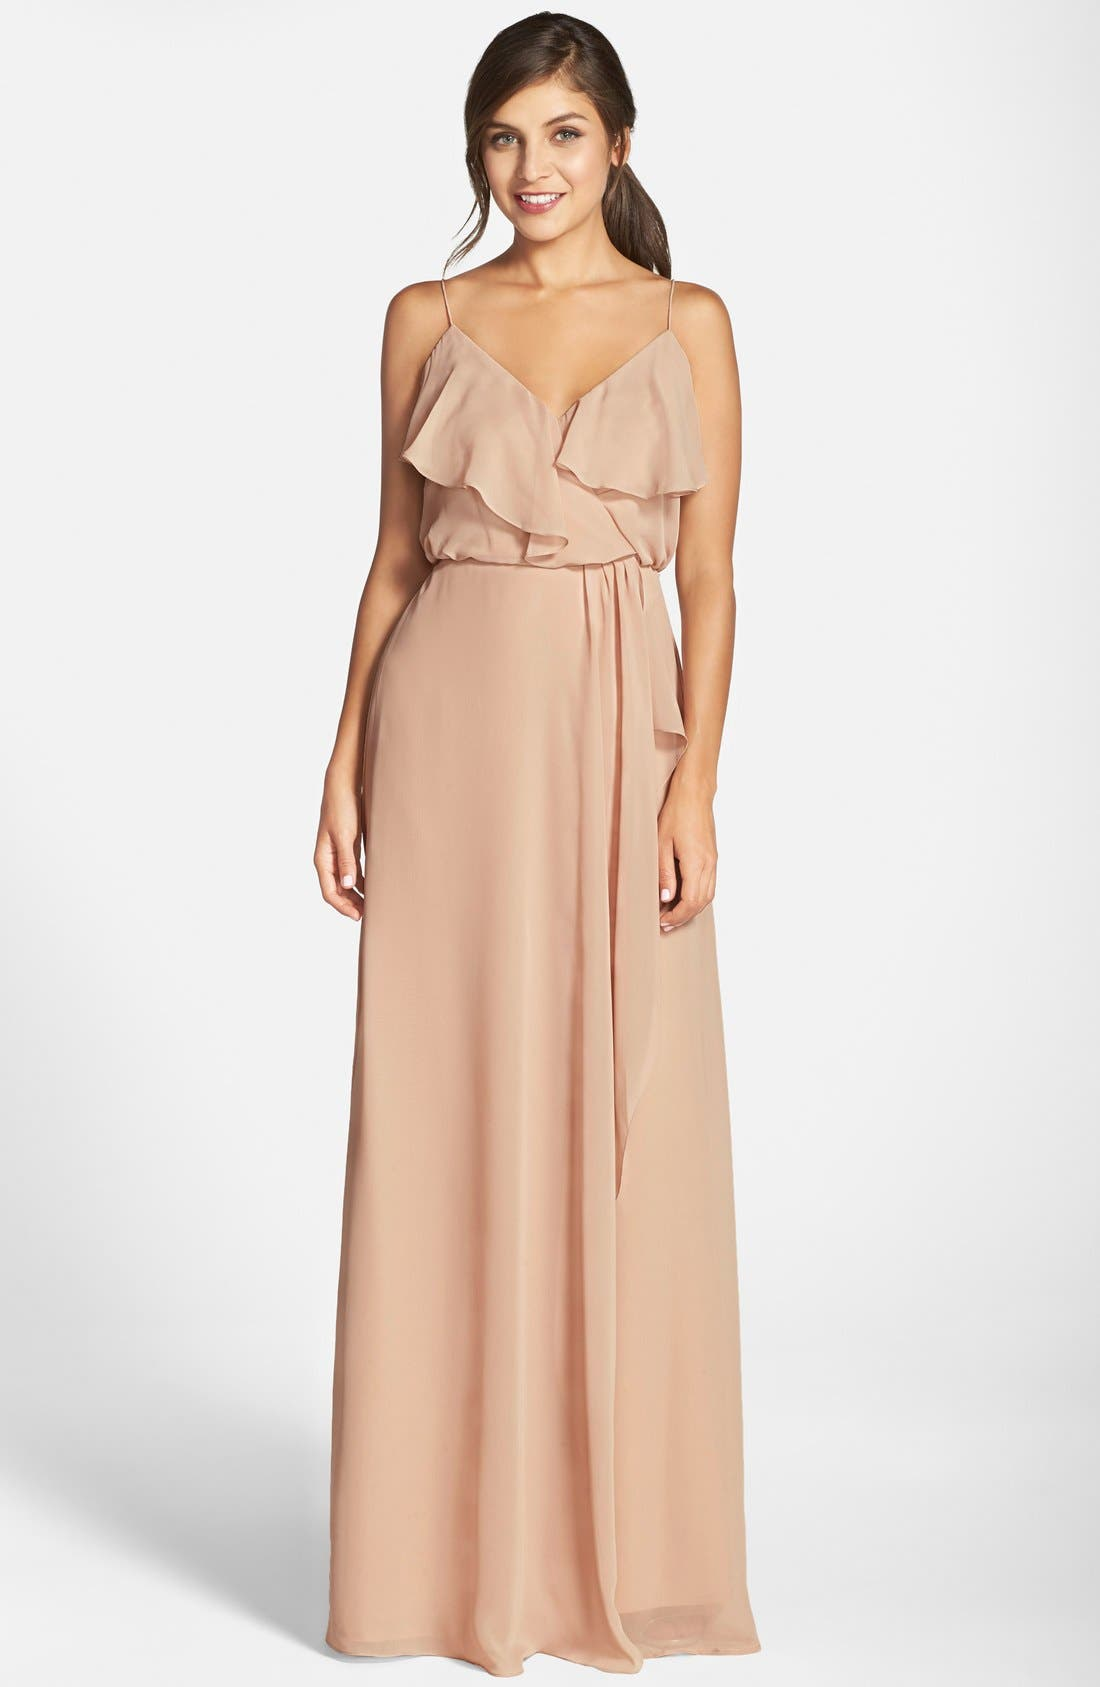 'Drew' Ruffle Front Chiffon Gown,                             Main thumbnail 2, color,